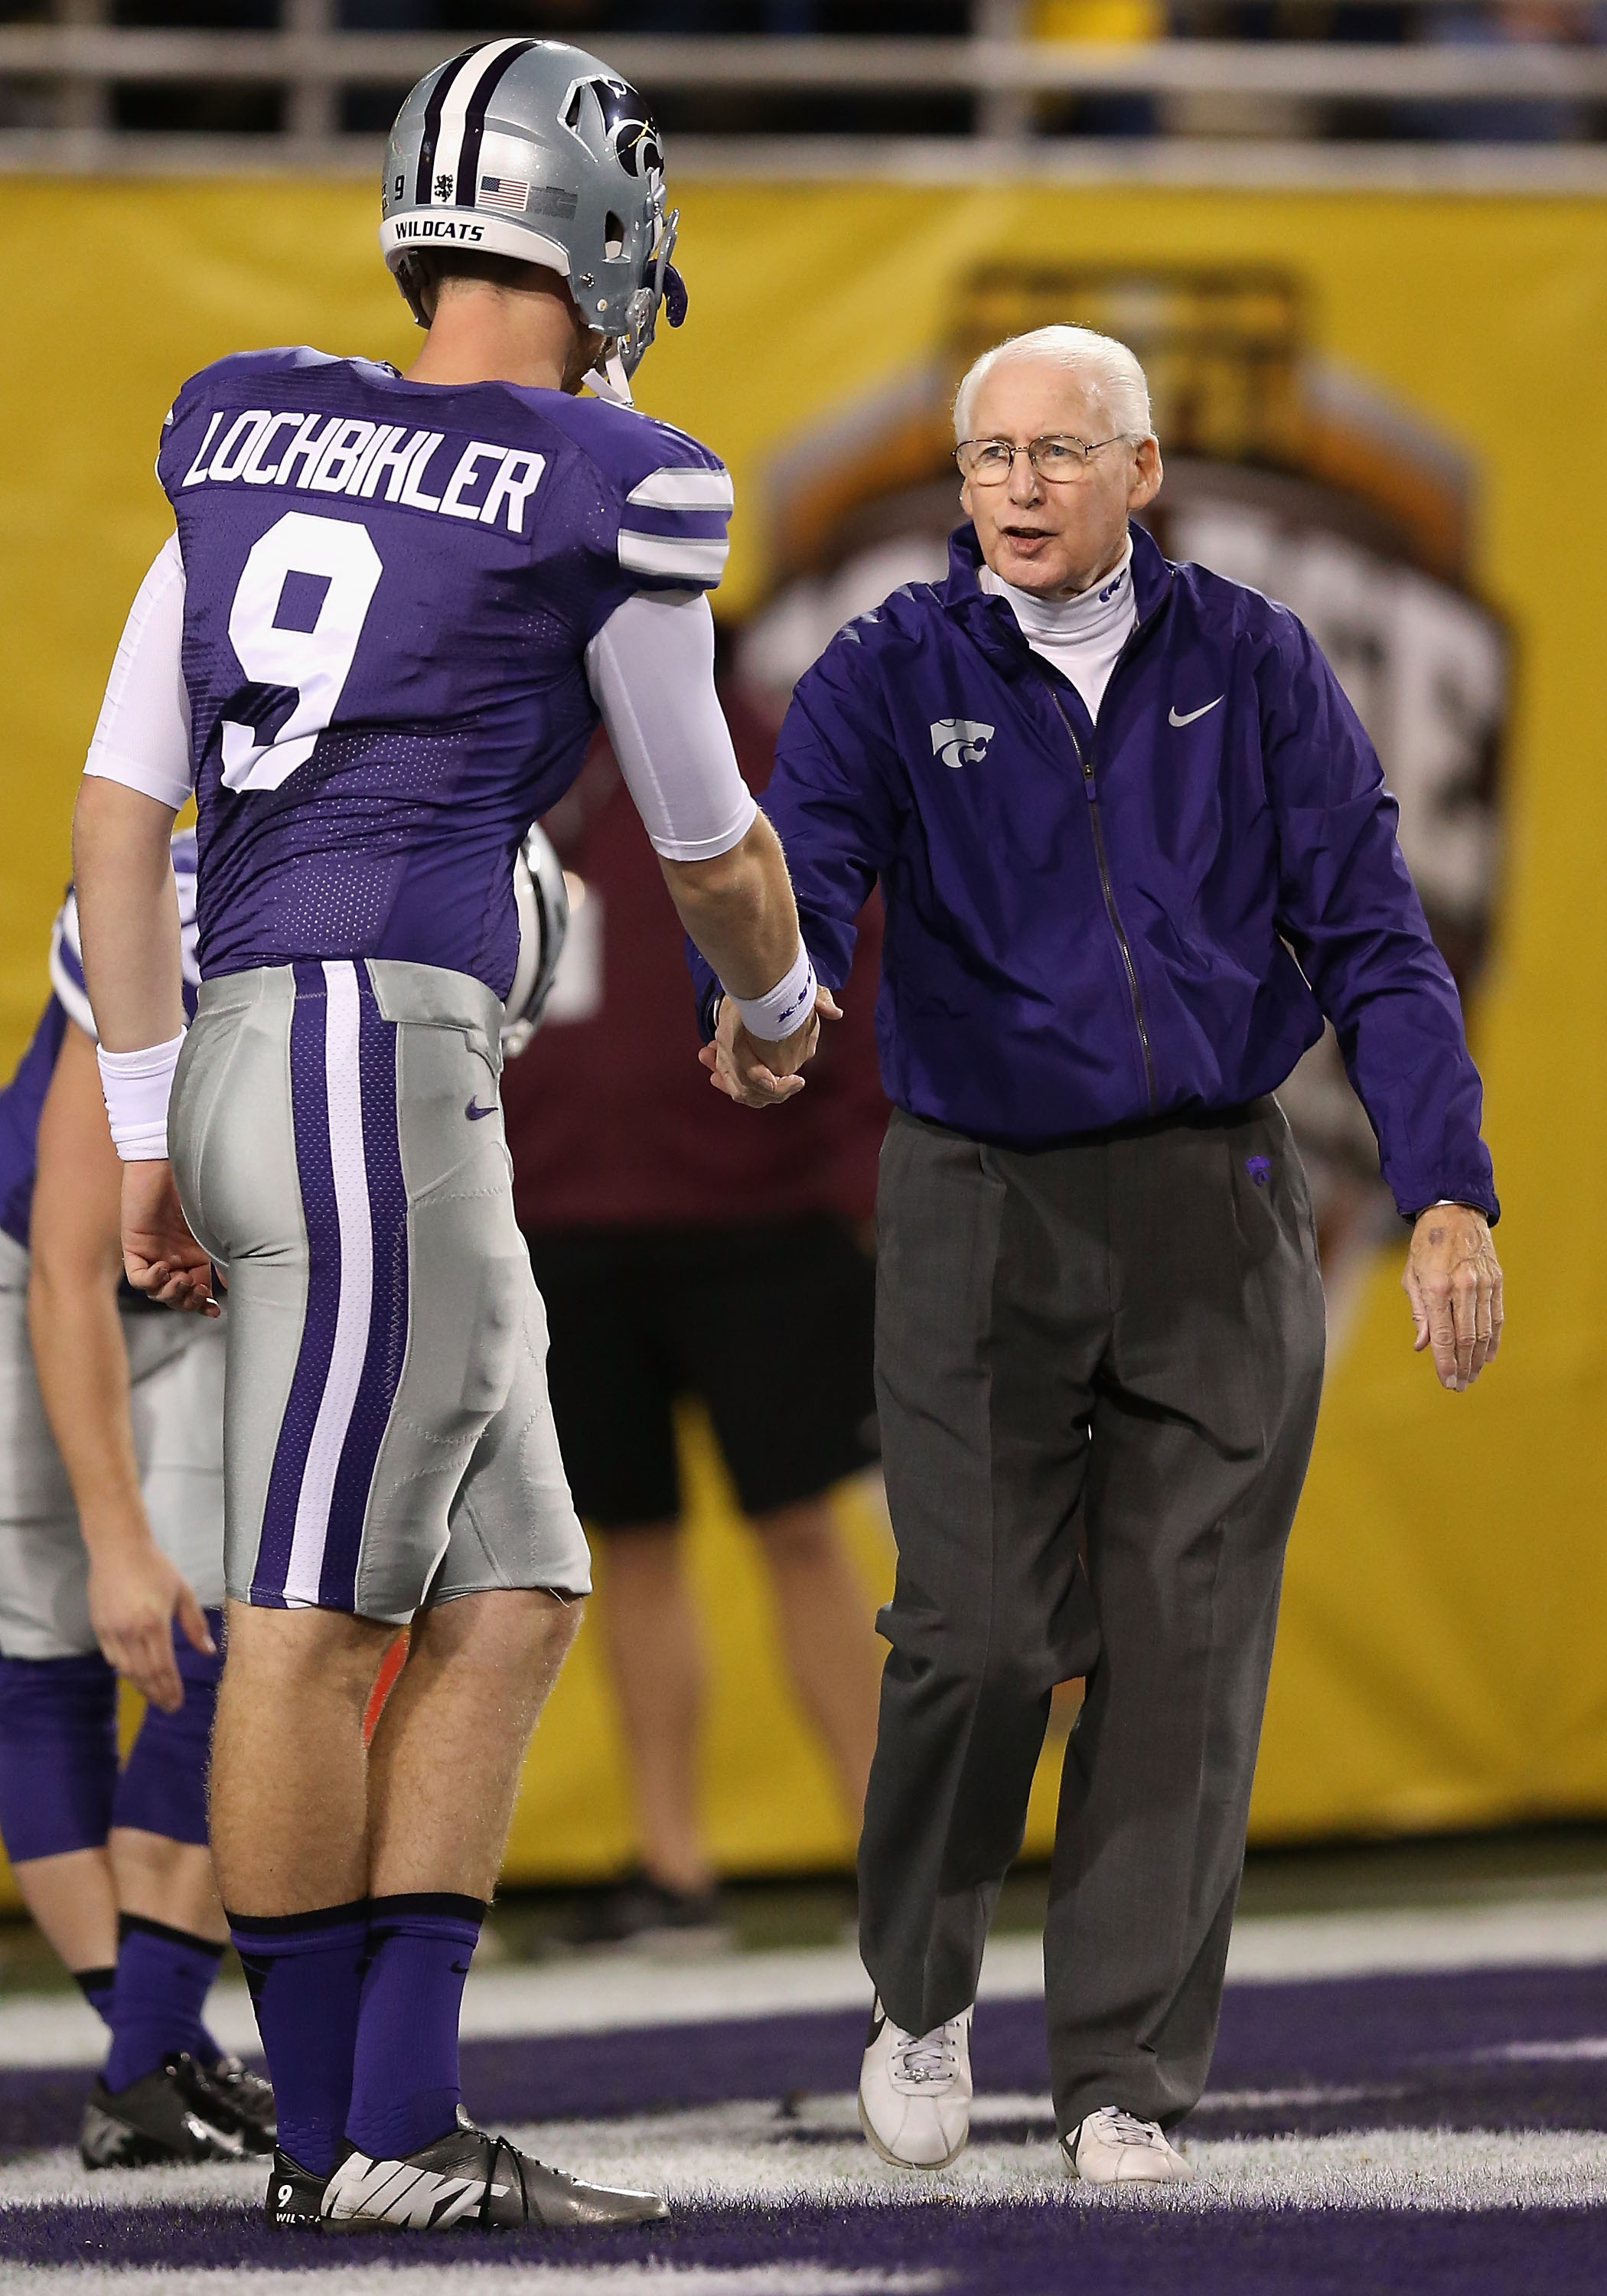 It has not been a stellar two seasons for Mitch Lochbihler, who started 2014 with the starting punting duties, but promptly kicked them away.